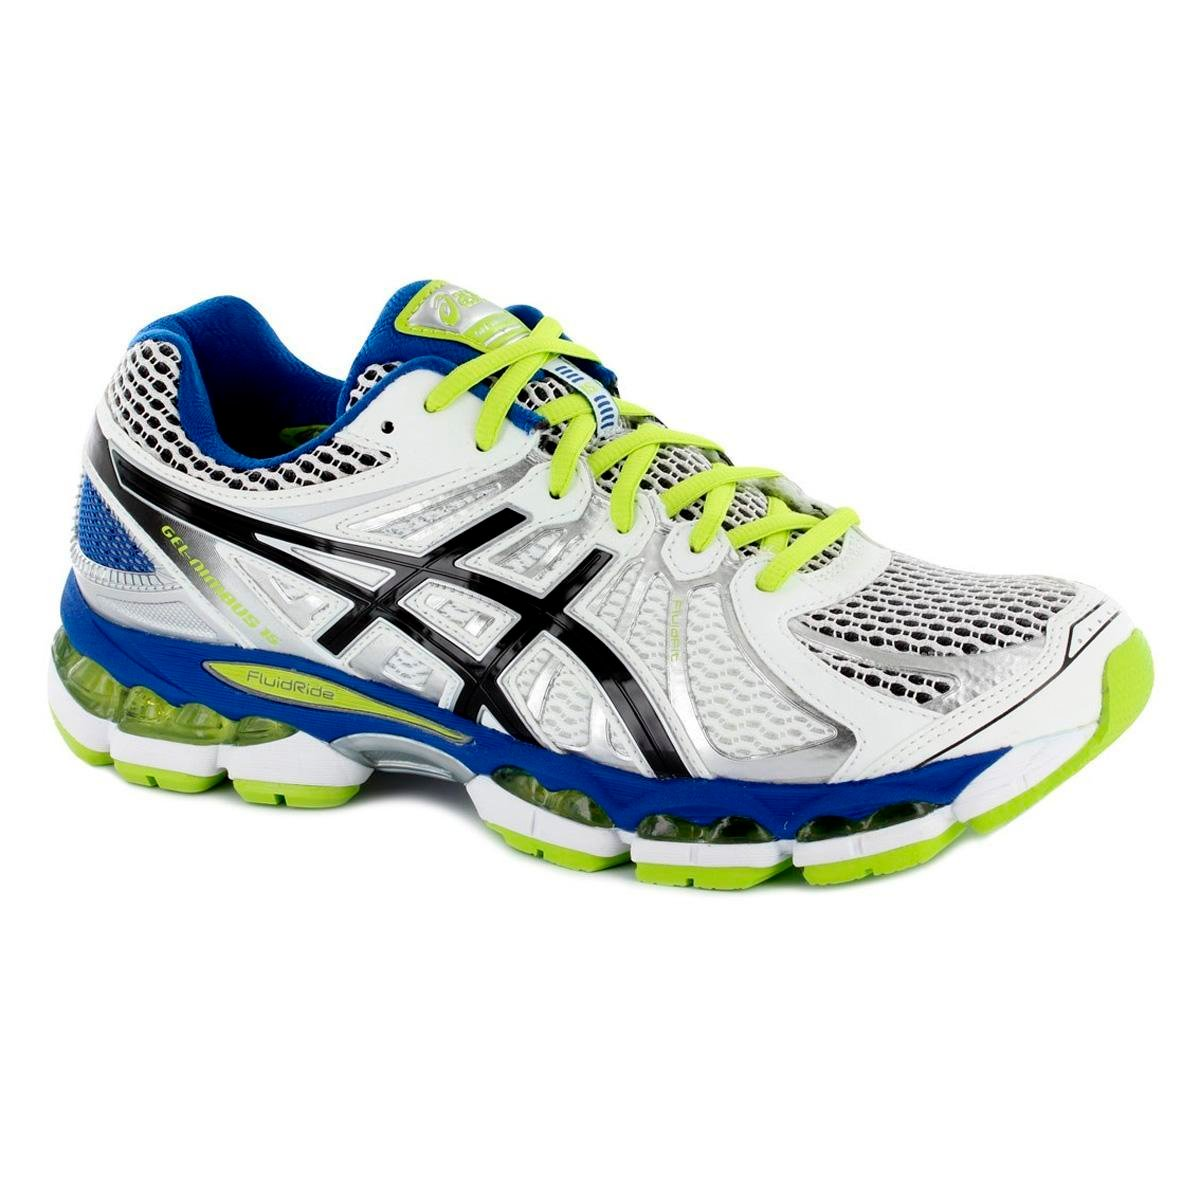 photos officielles 2a796 06c03 Asics Mens GEL Nimbus 15 Running Shoes - White/Black/Lime